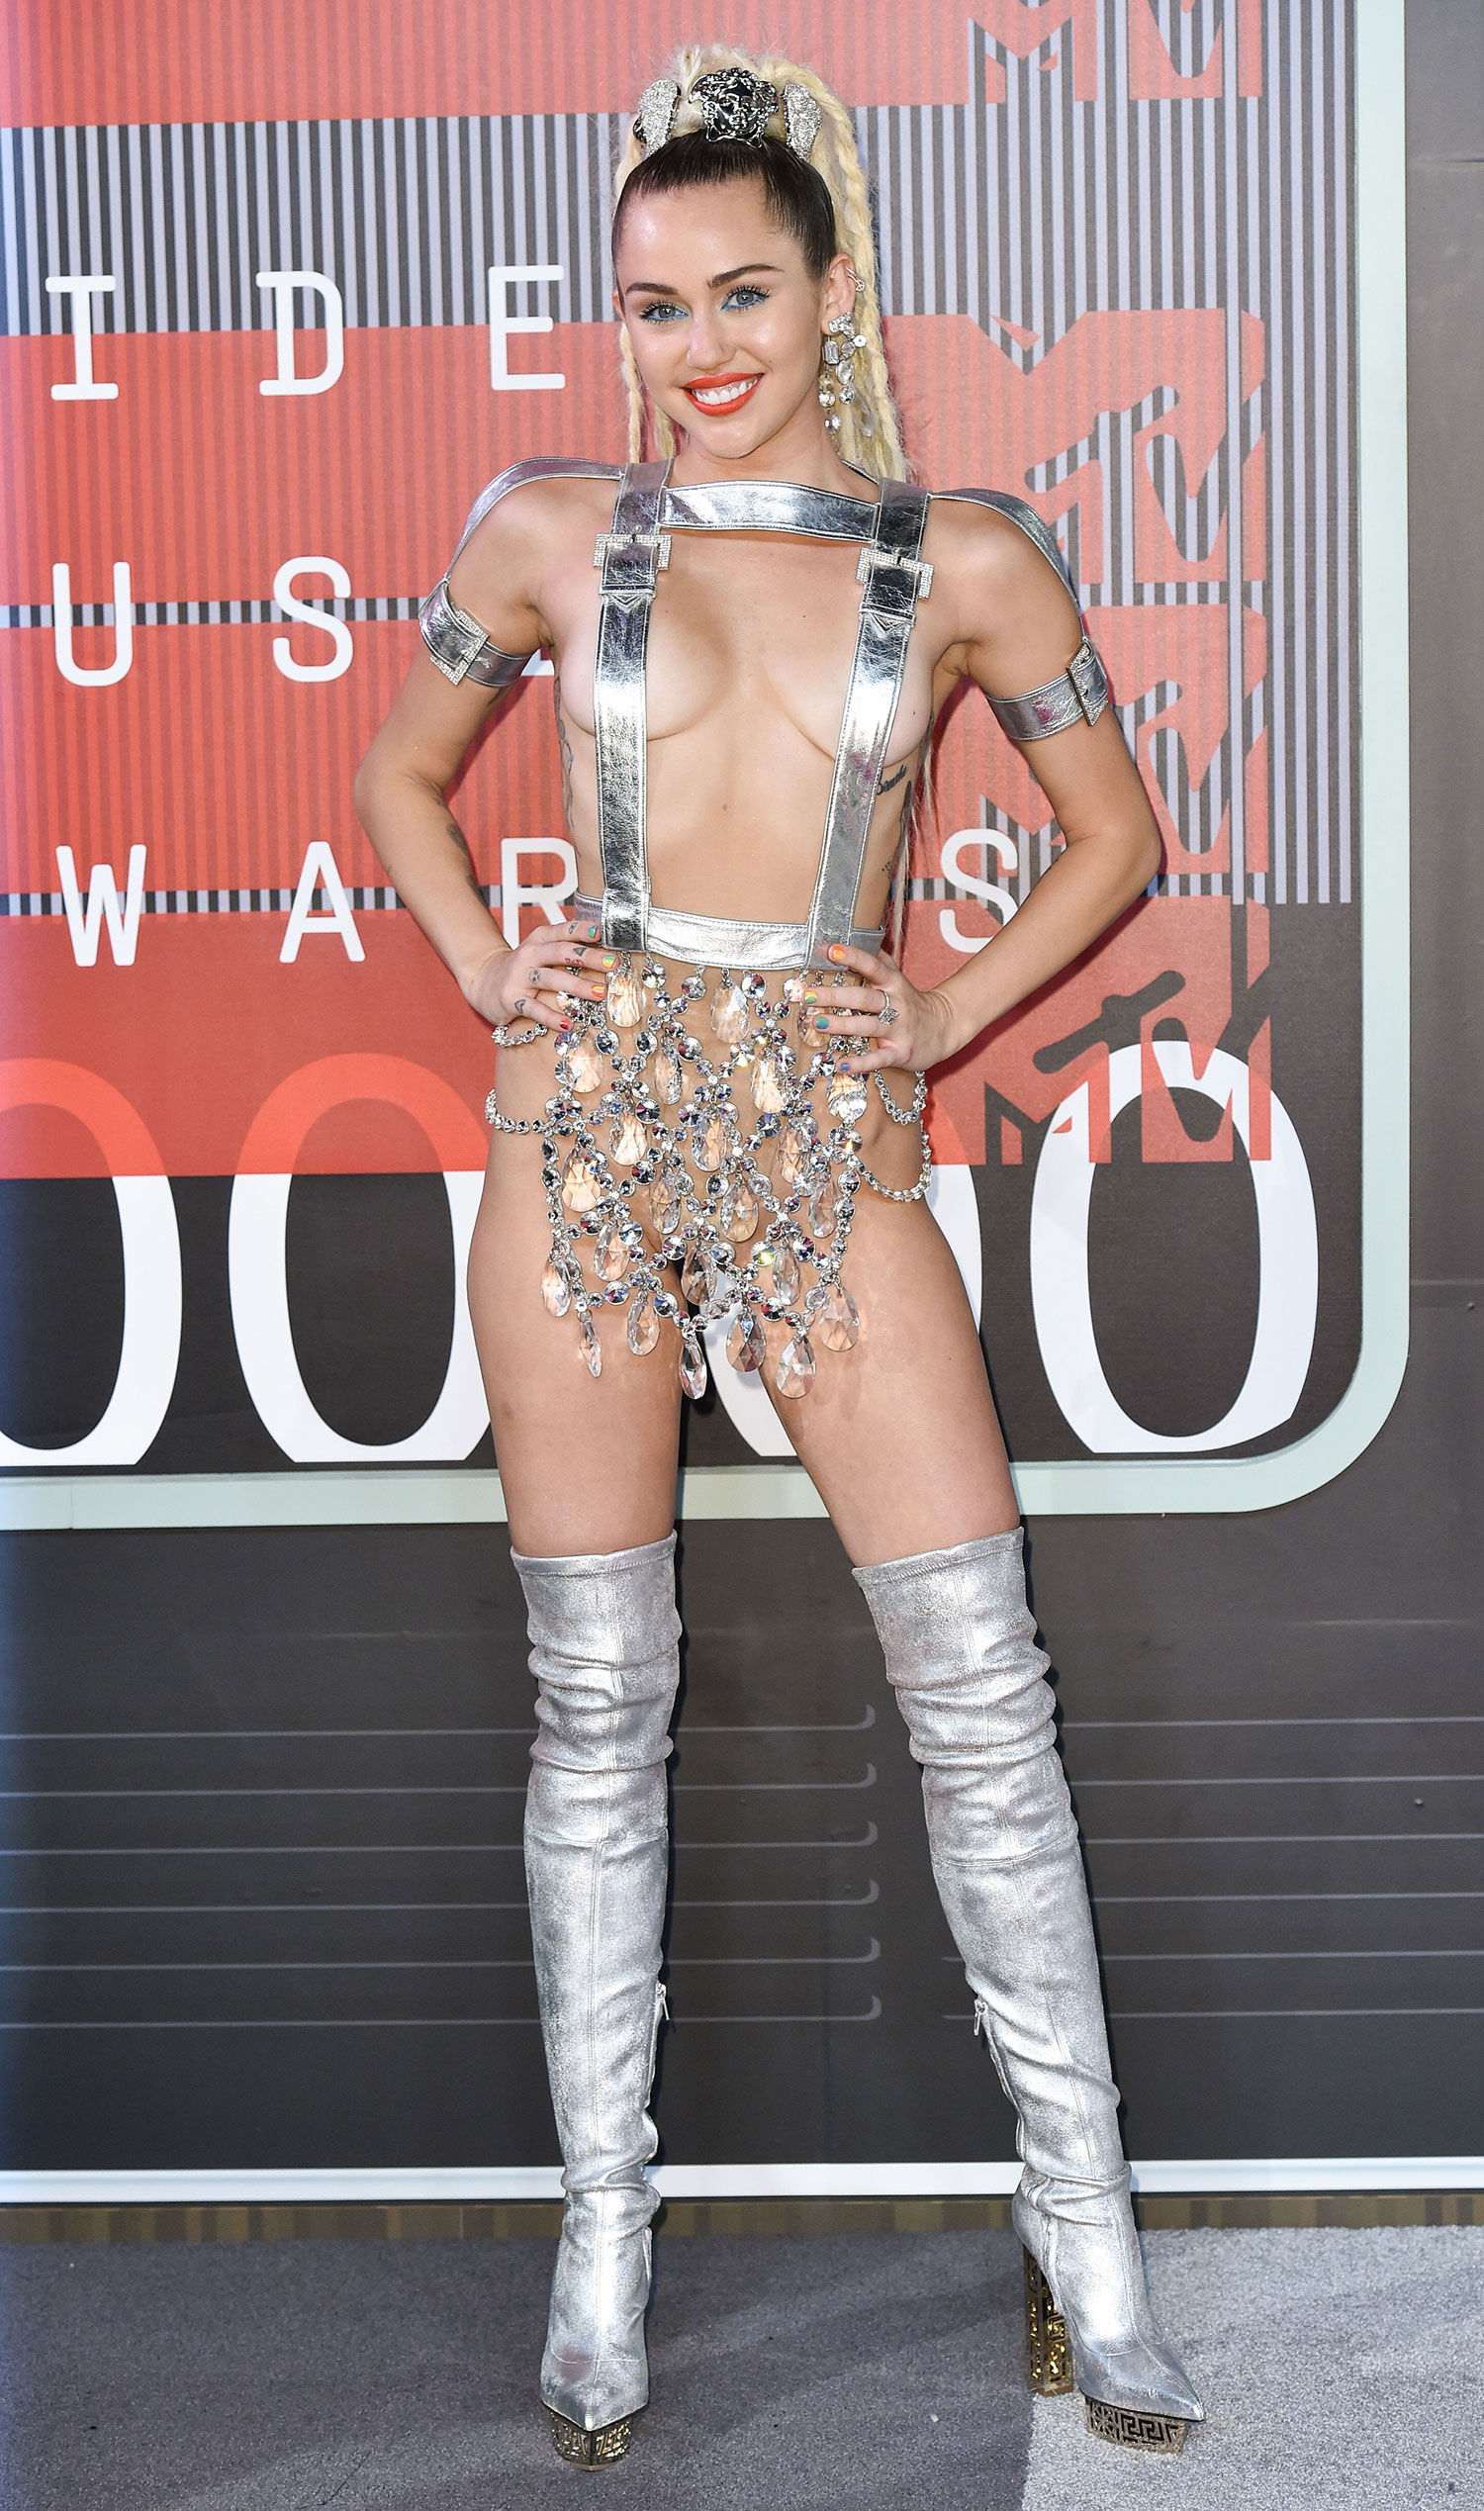 Miley cyrus most revealing photos